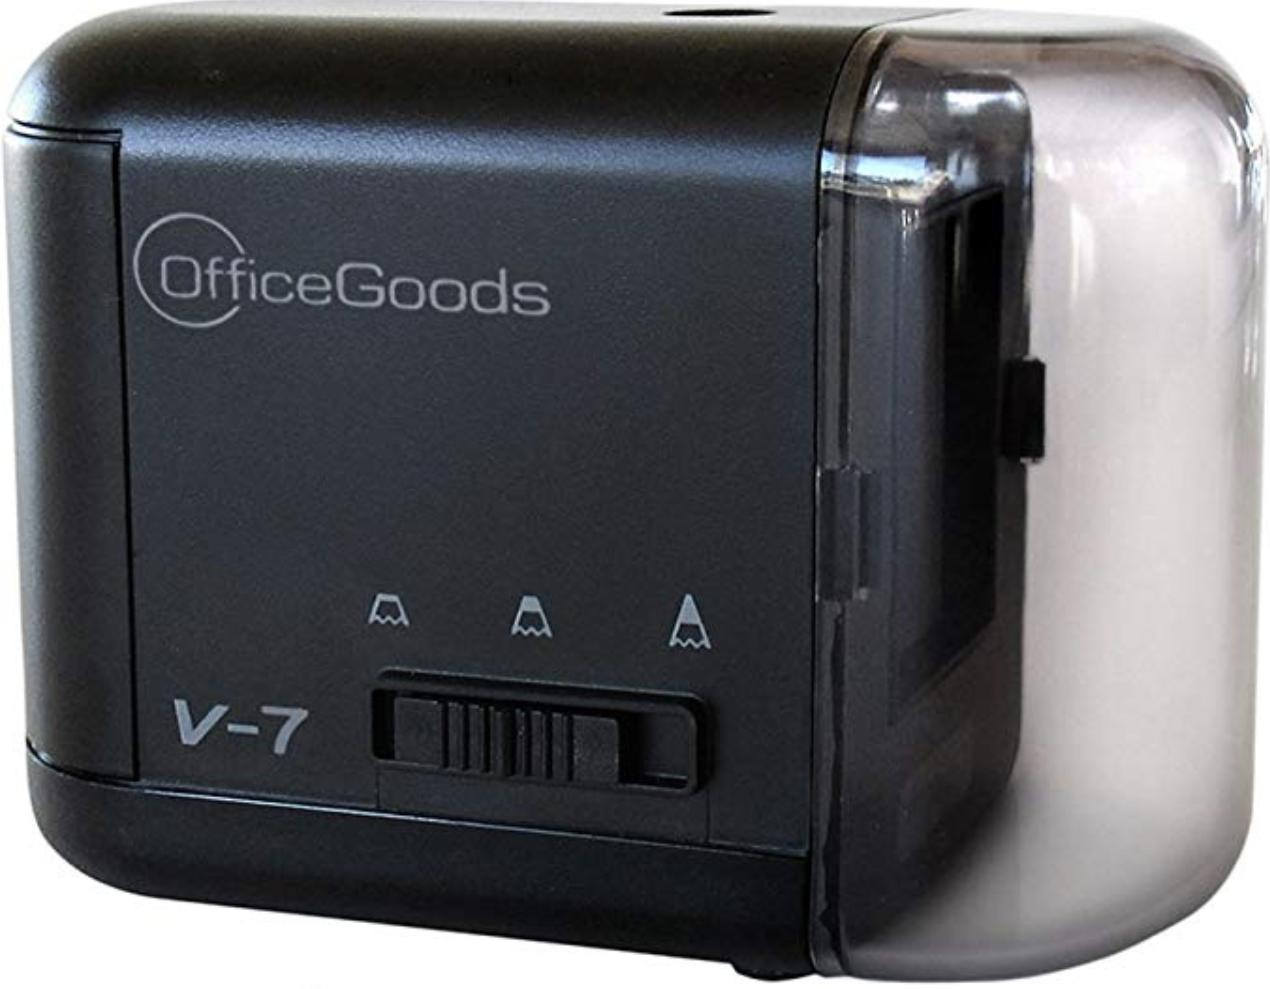 OfficeGoods V-7 Electric and Battery Operated Pencil Sharpener render image